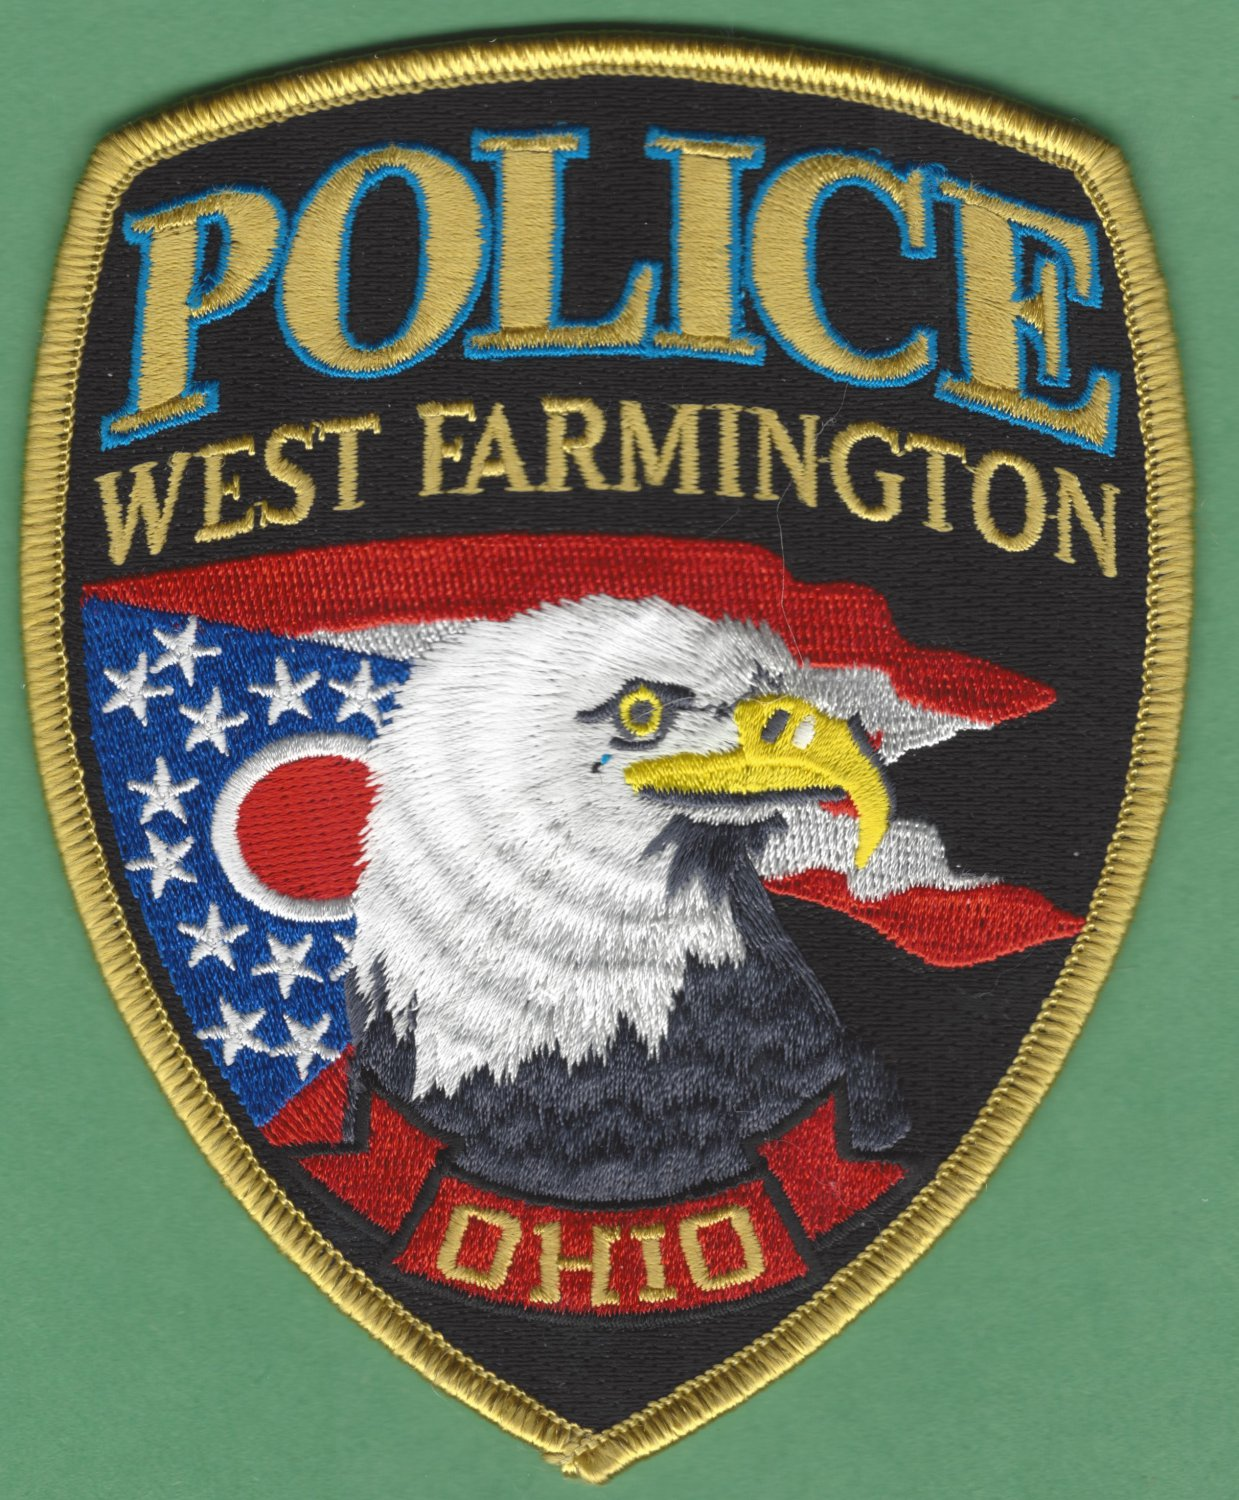 west farmington Search all the latest west farmington, oh foreclosures available find the best home deals on the market in west farmington, oh view homes for sale that are 30-50% below market value.